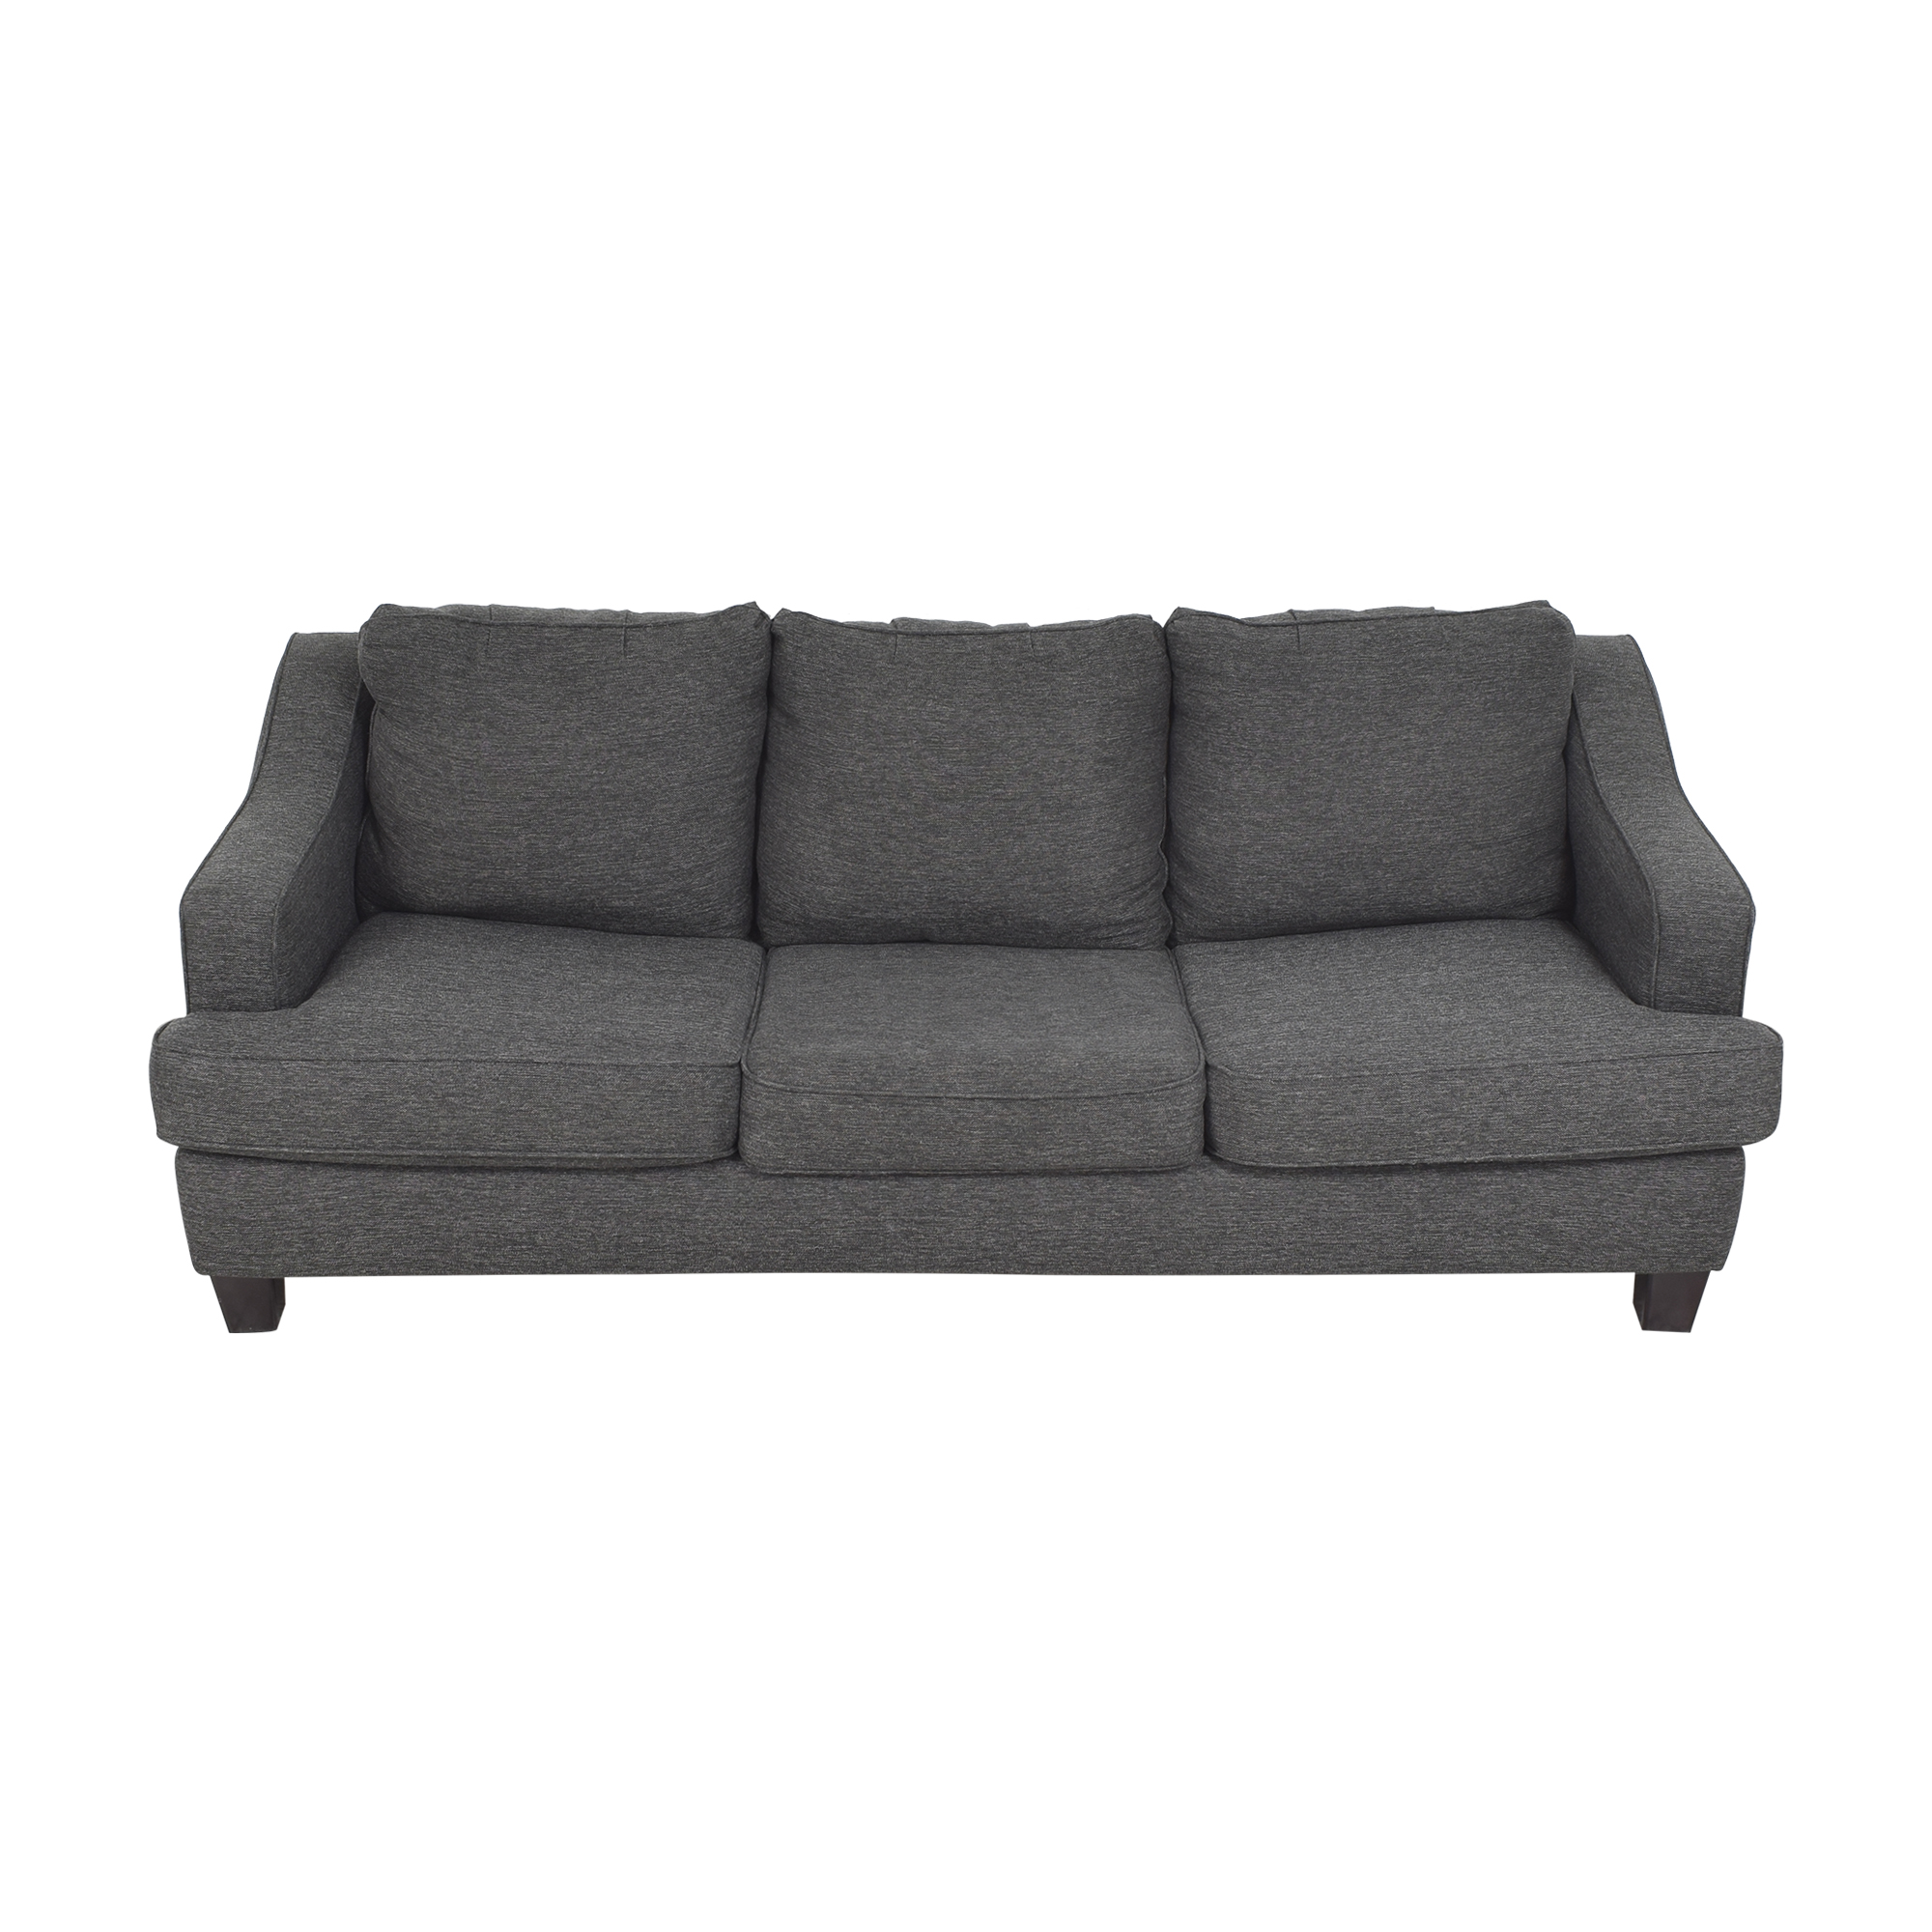 Raymour & Flanigan Raymour & Flanigan Modern Queen Sleeper Sofa pa